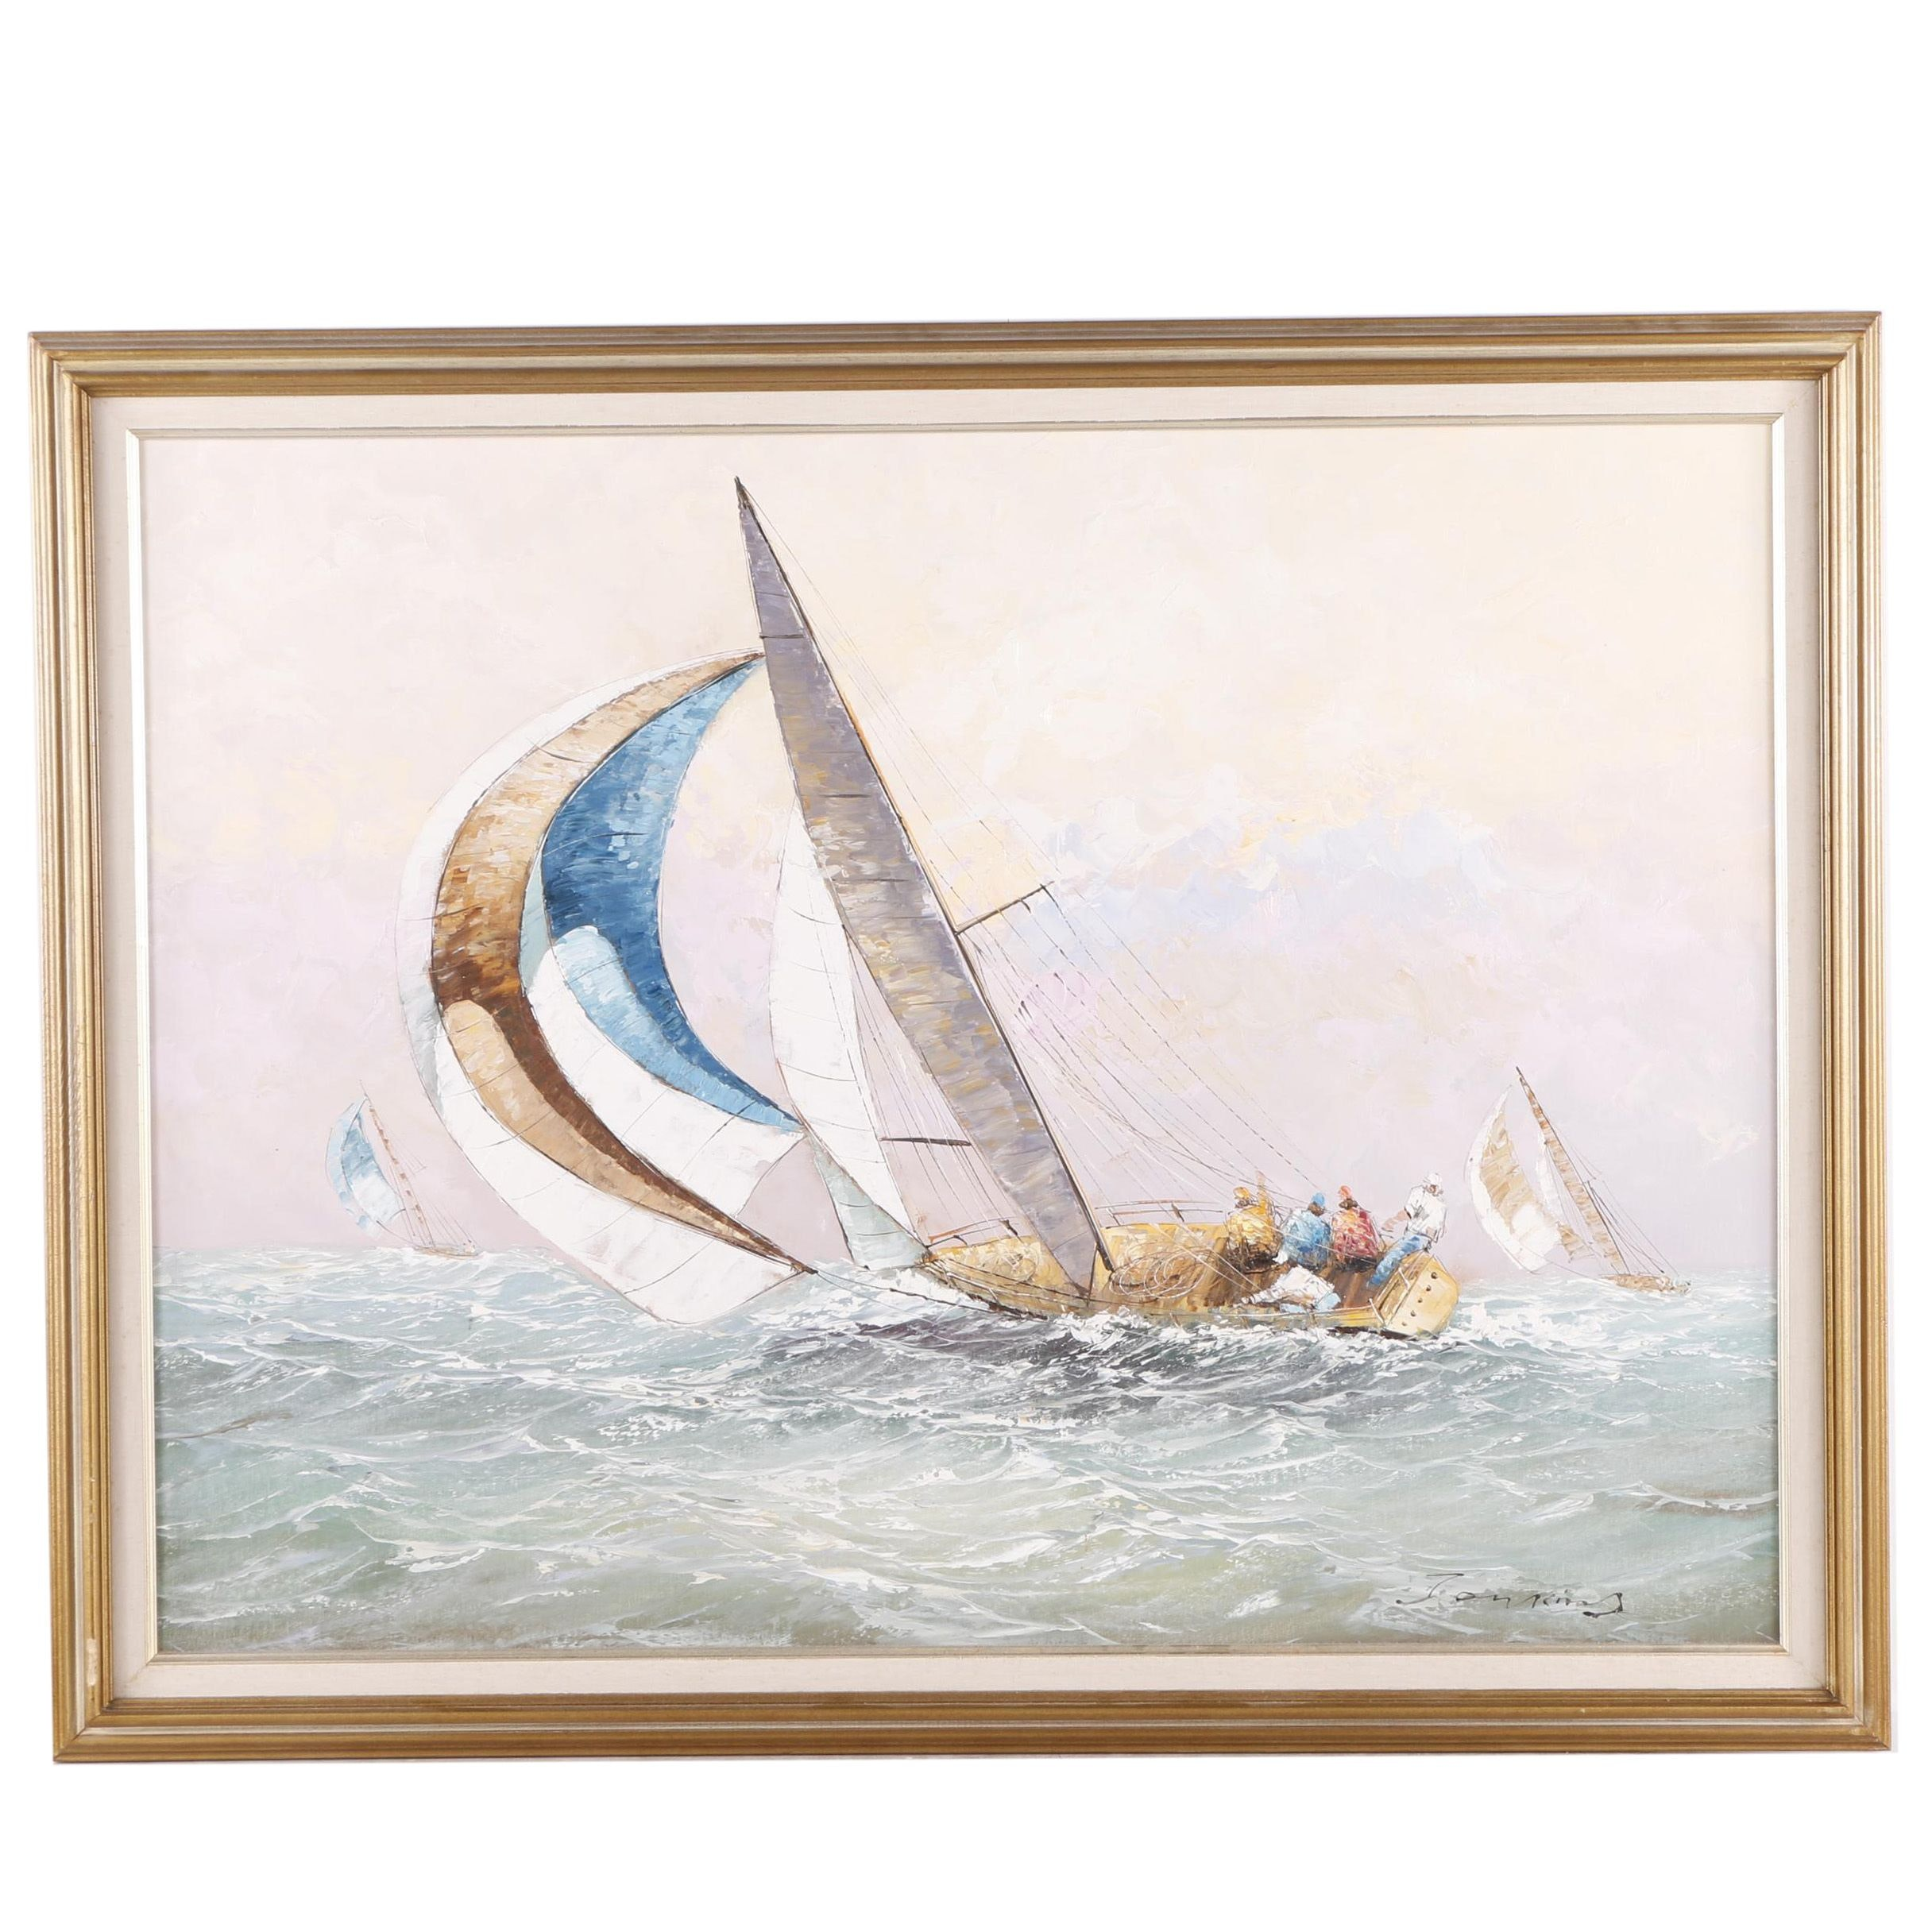 Jenkins Signed Nautical Oil Painting on Canvas